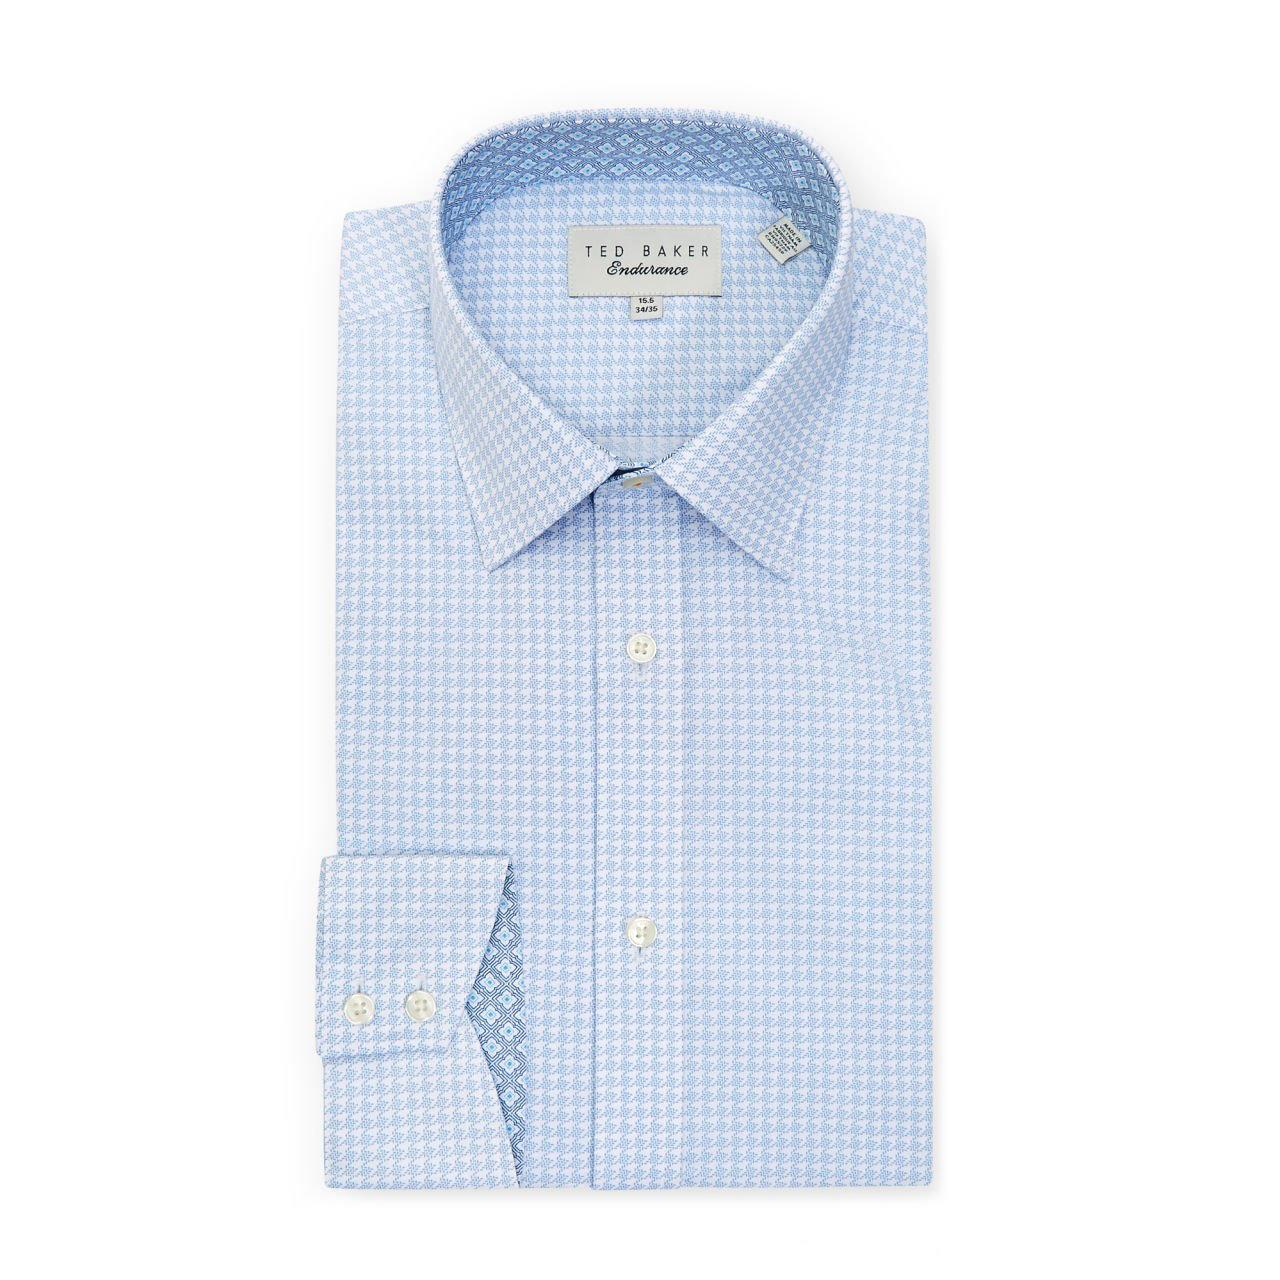 Ted Baker GRAHITE Houndstooth Endurance Shirt